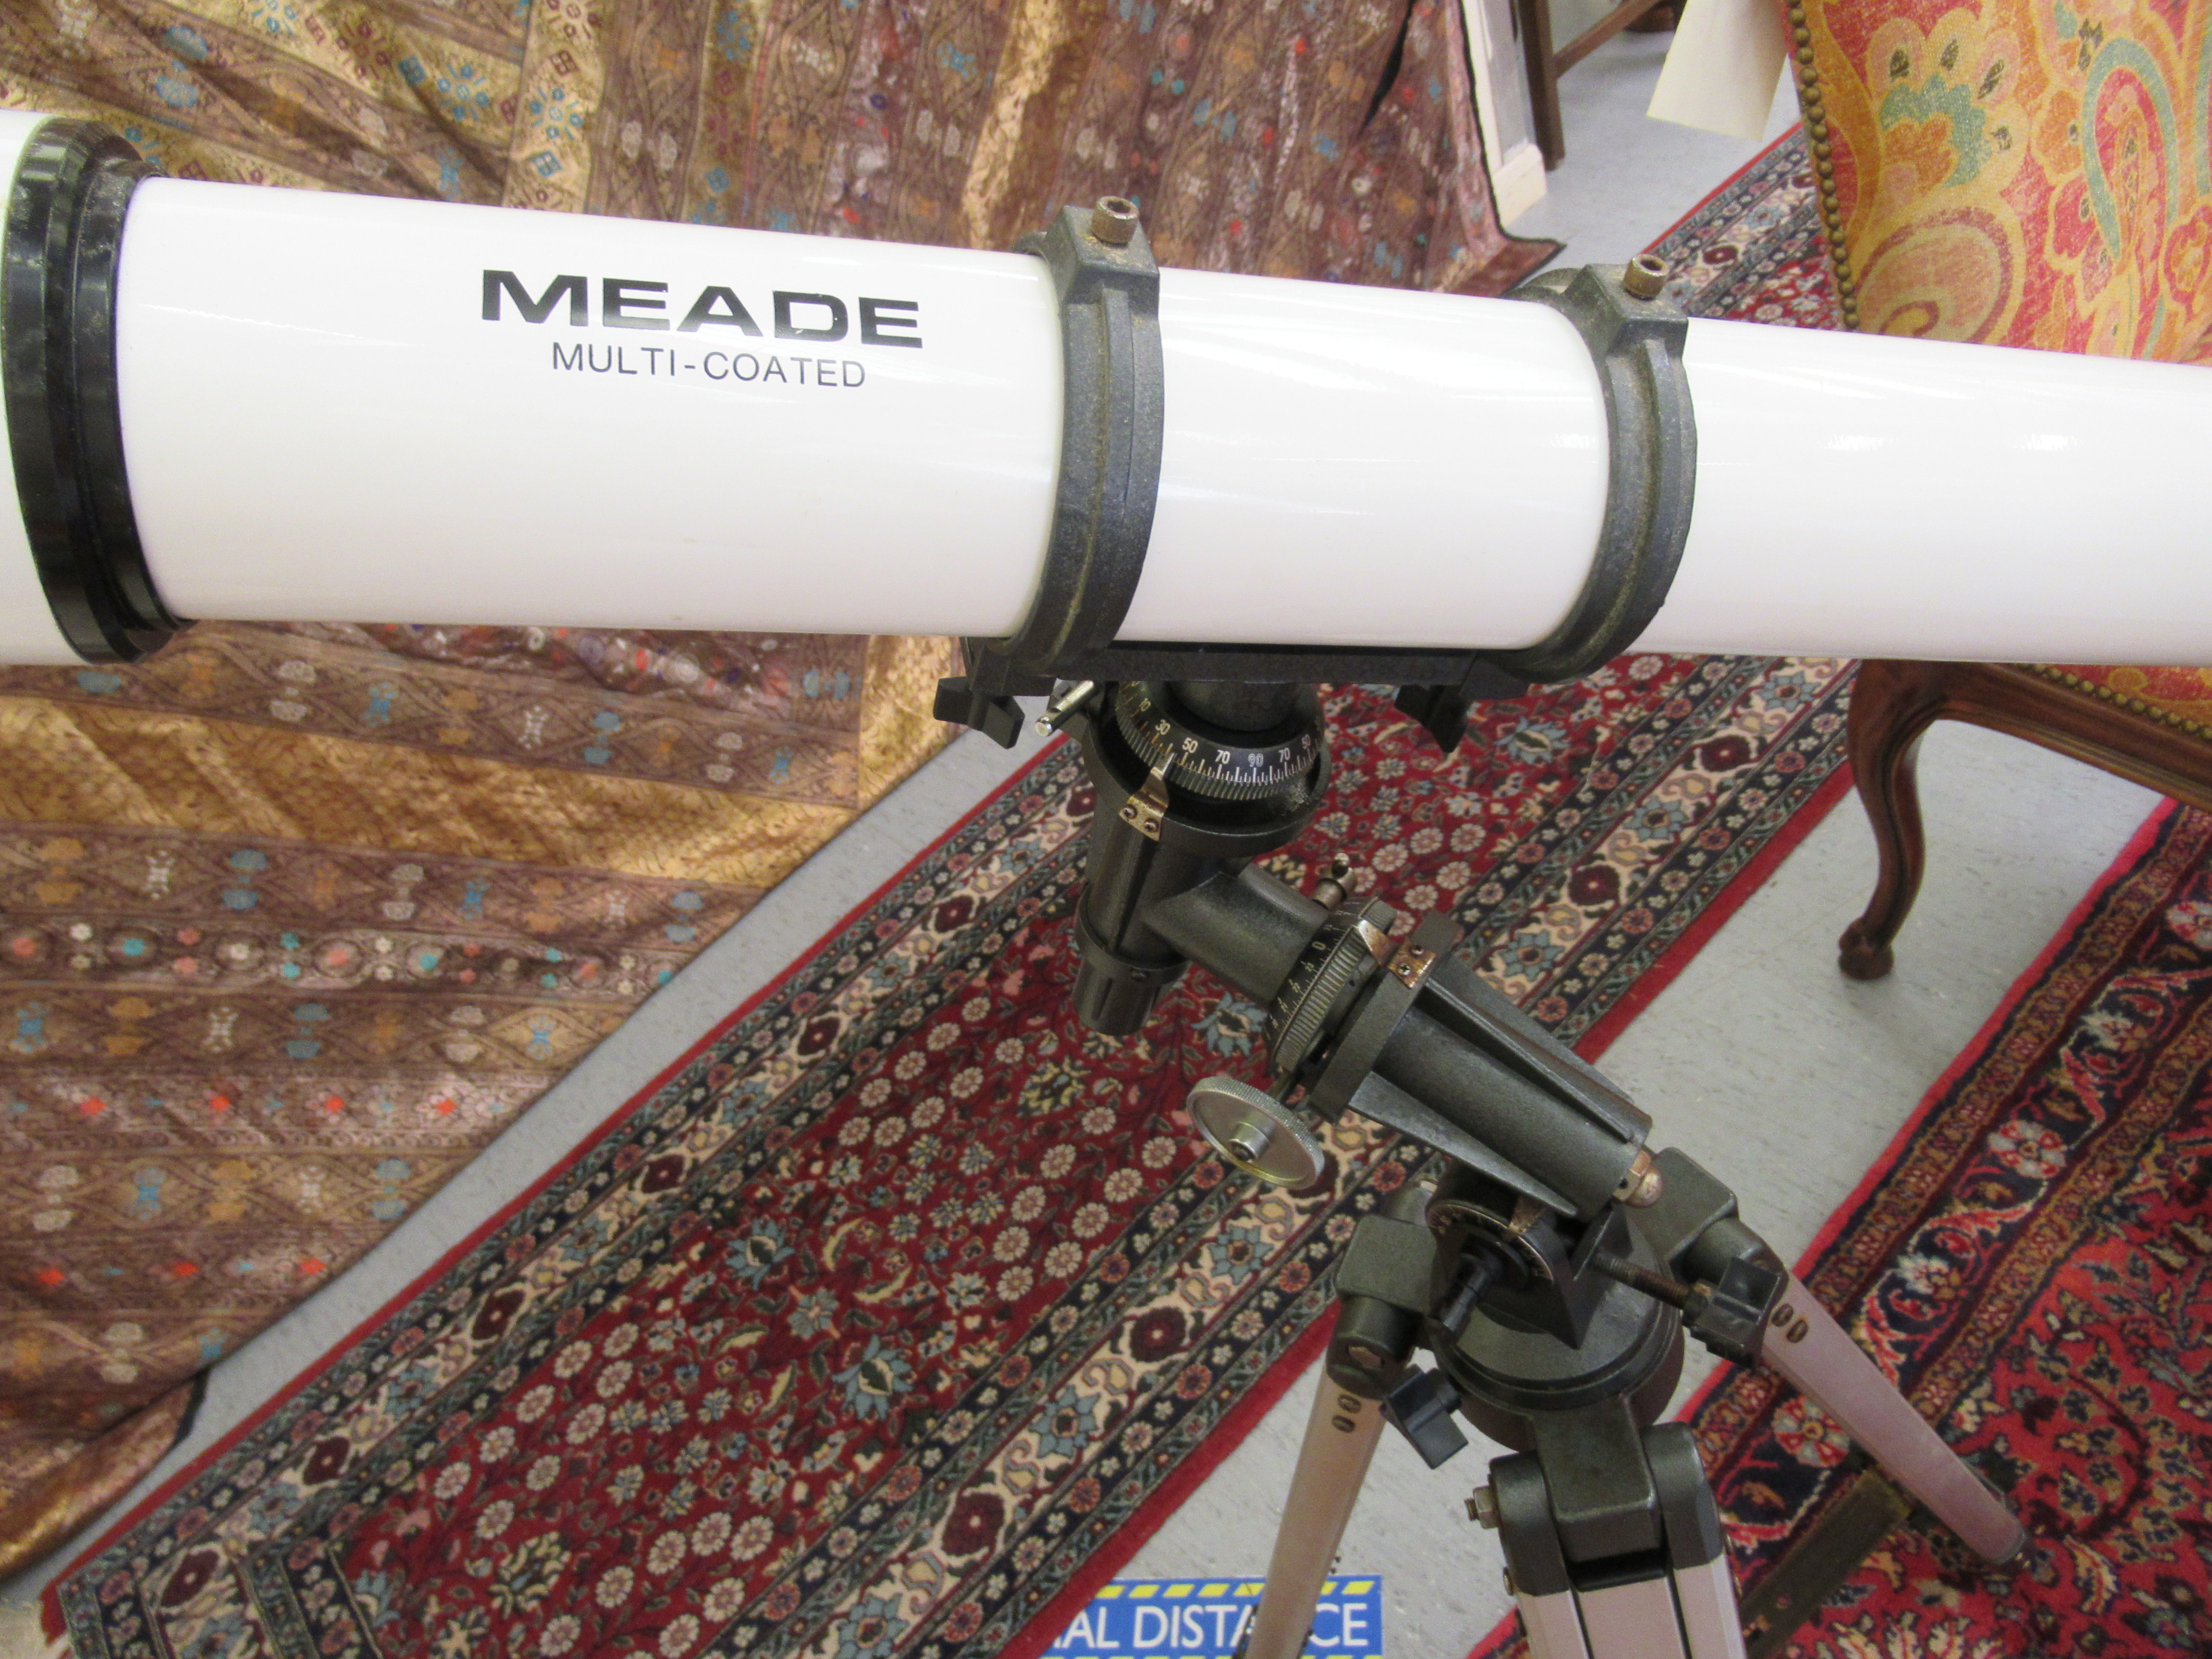 """A Meade telescope with a 6x30mm lens 41""""L, on a tripod stand 38""""h - Image 2 of 3"""